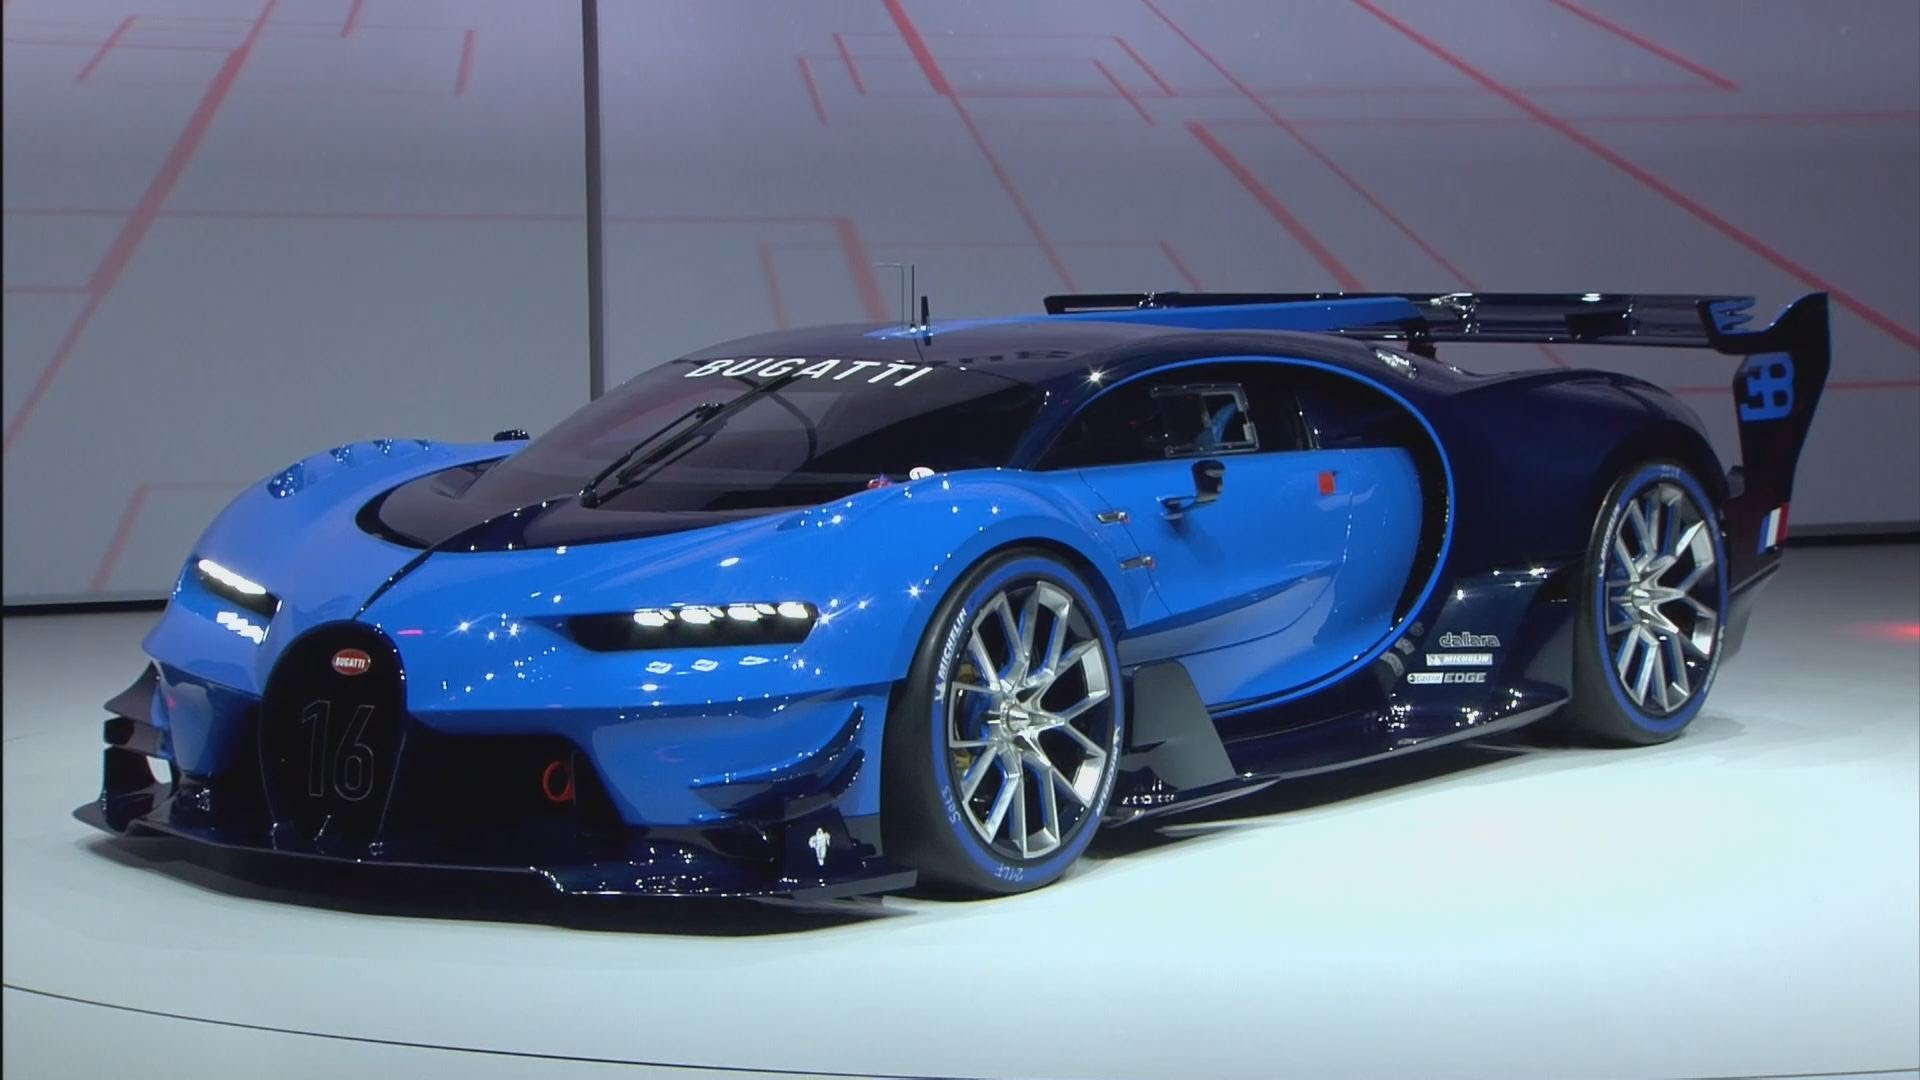 2015 Frankfurt International Motor Show - 2016 Bugatti Vision Gran on